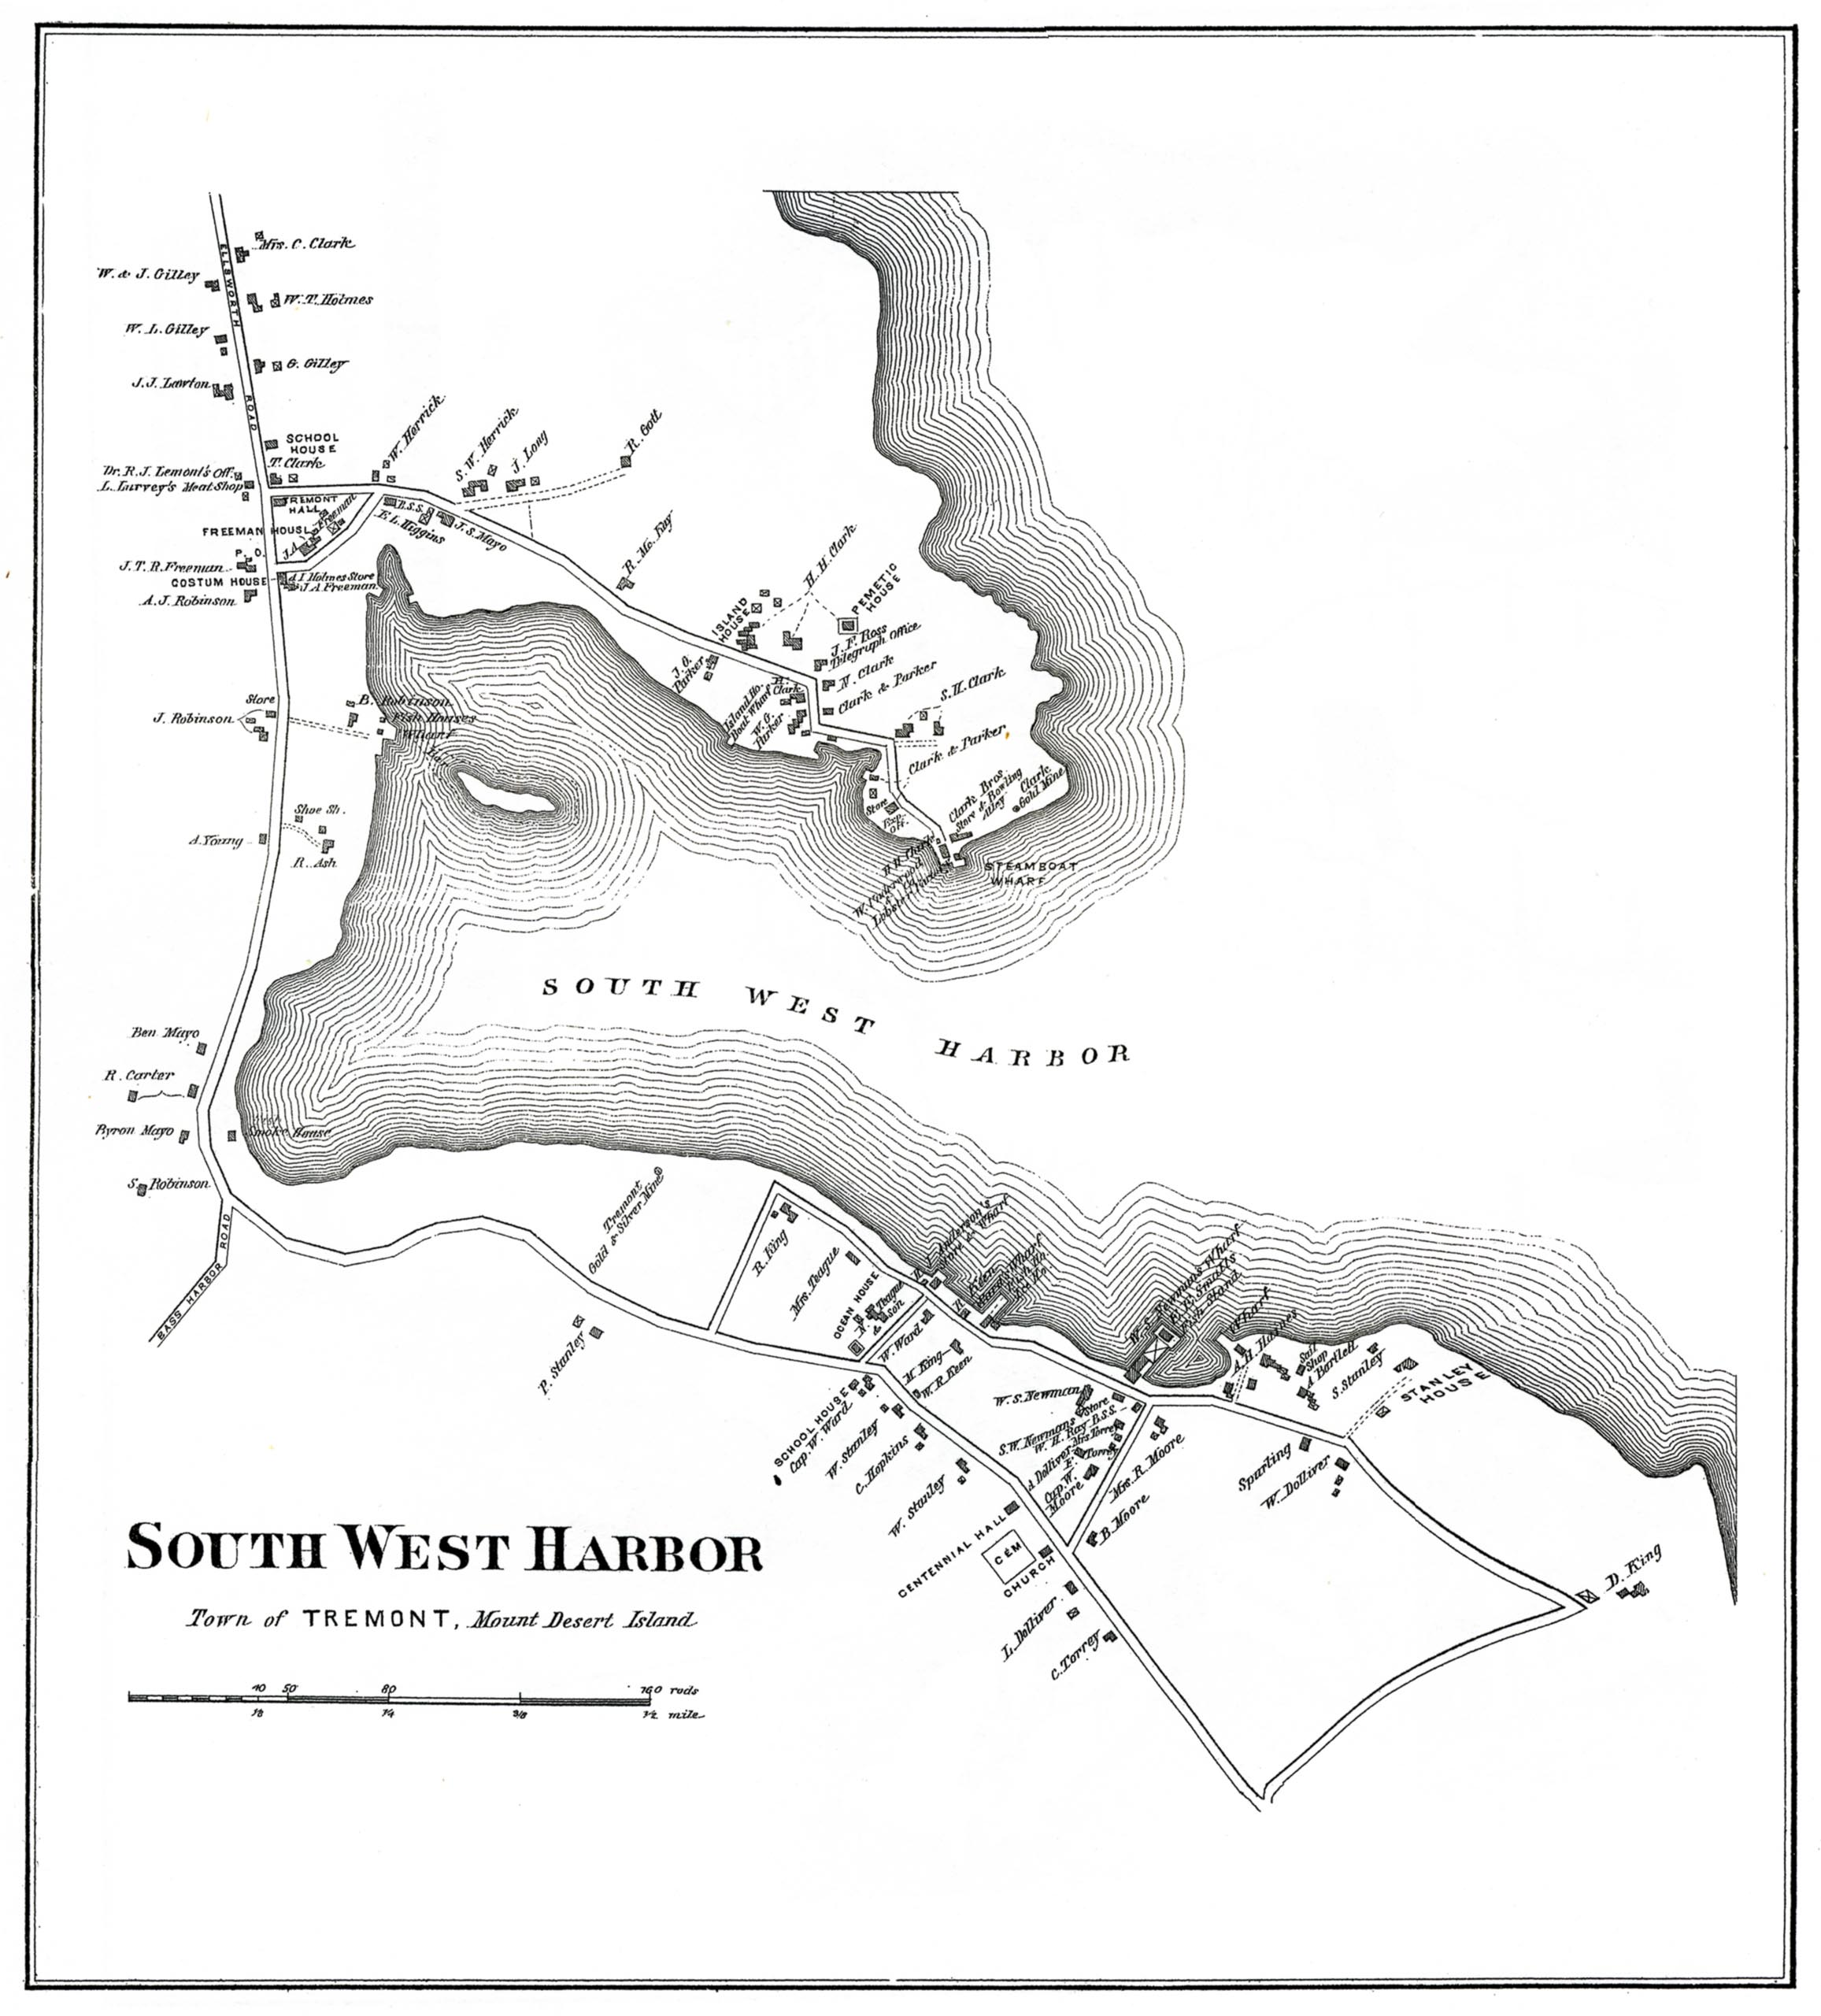 South West Harbor, Town of Tremont